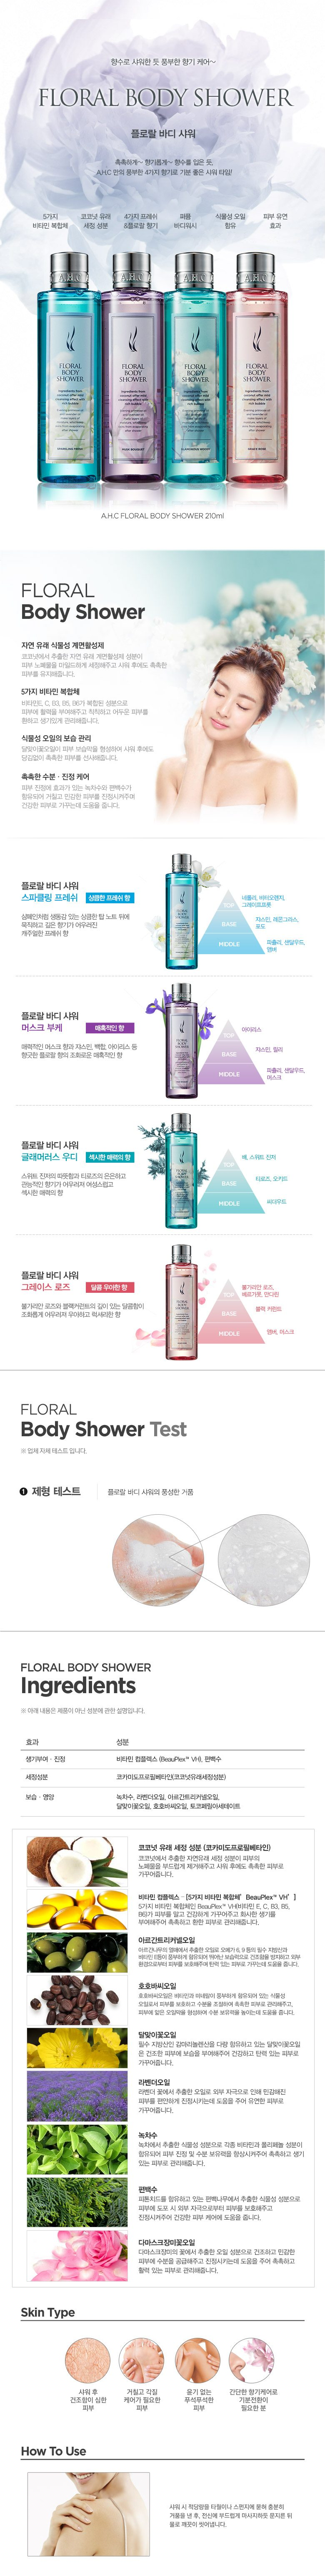 AHC Floral Body Shower 210ml malaysia singapore indonesia